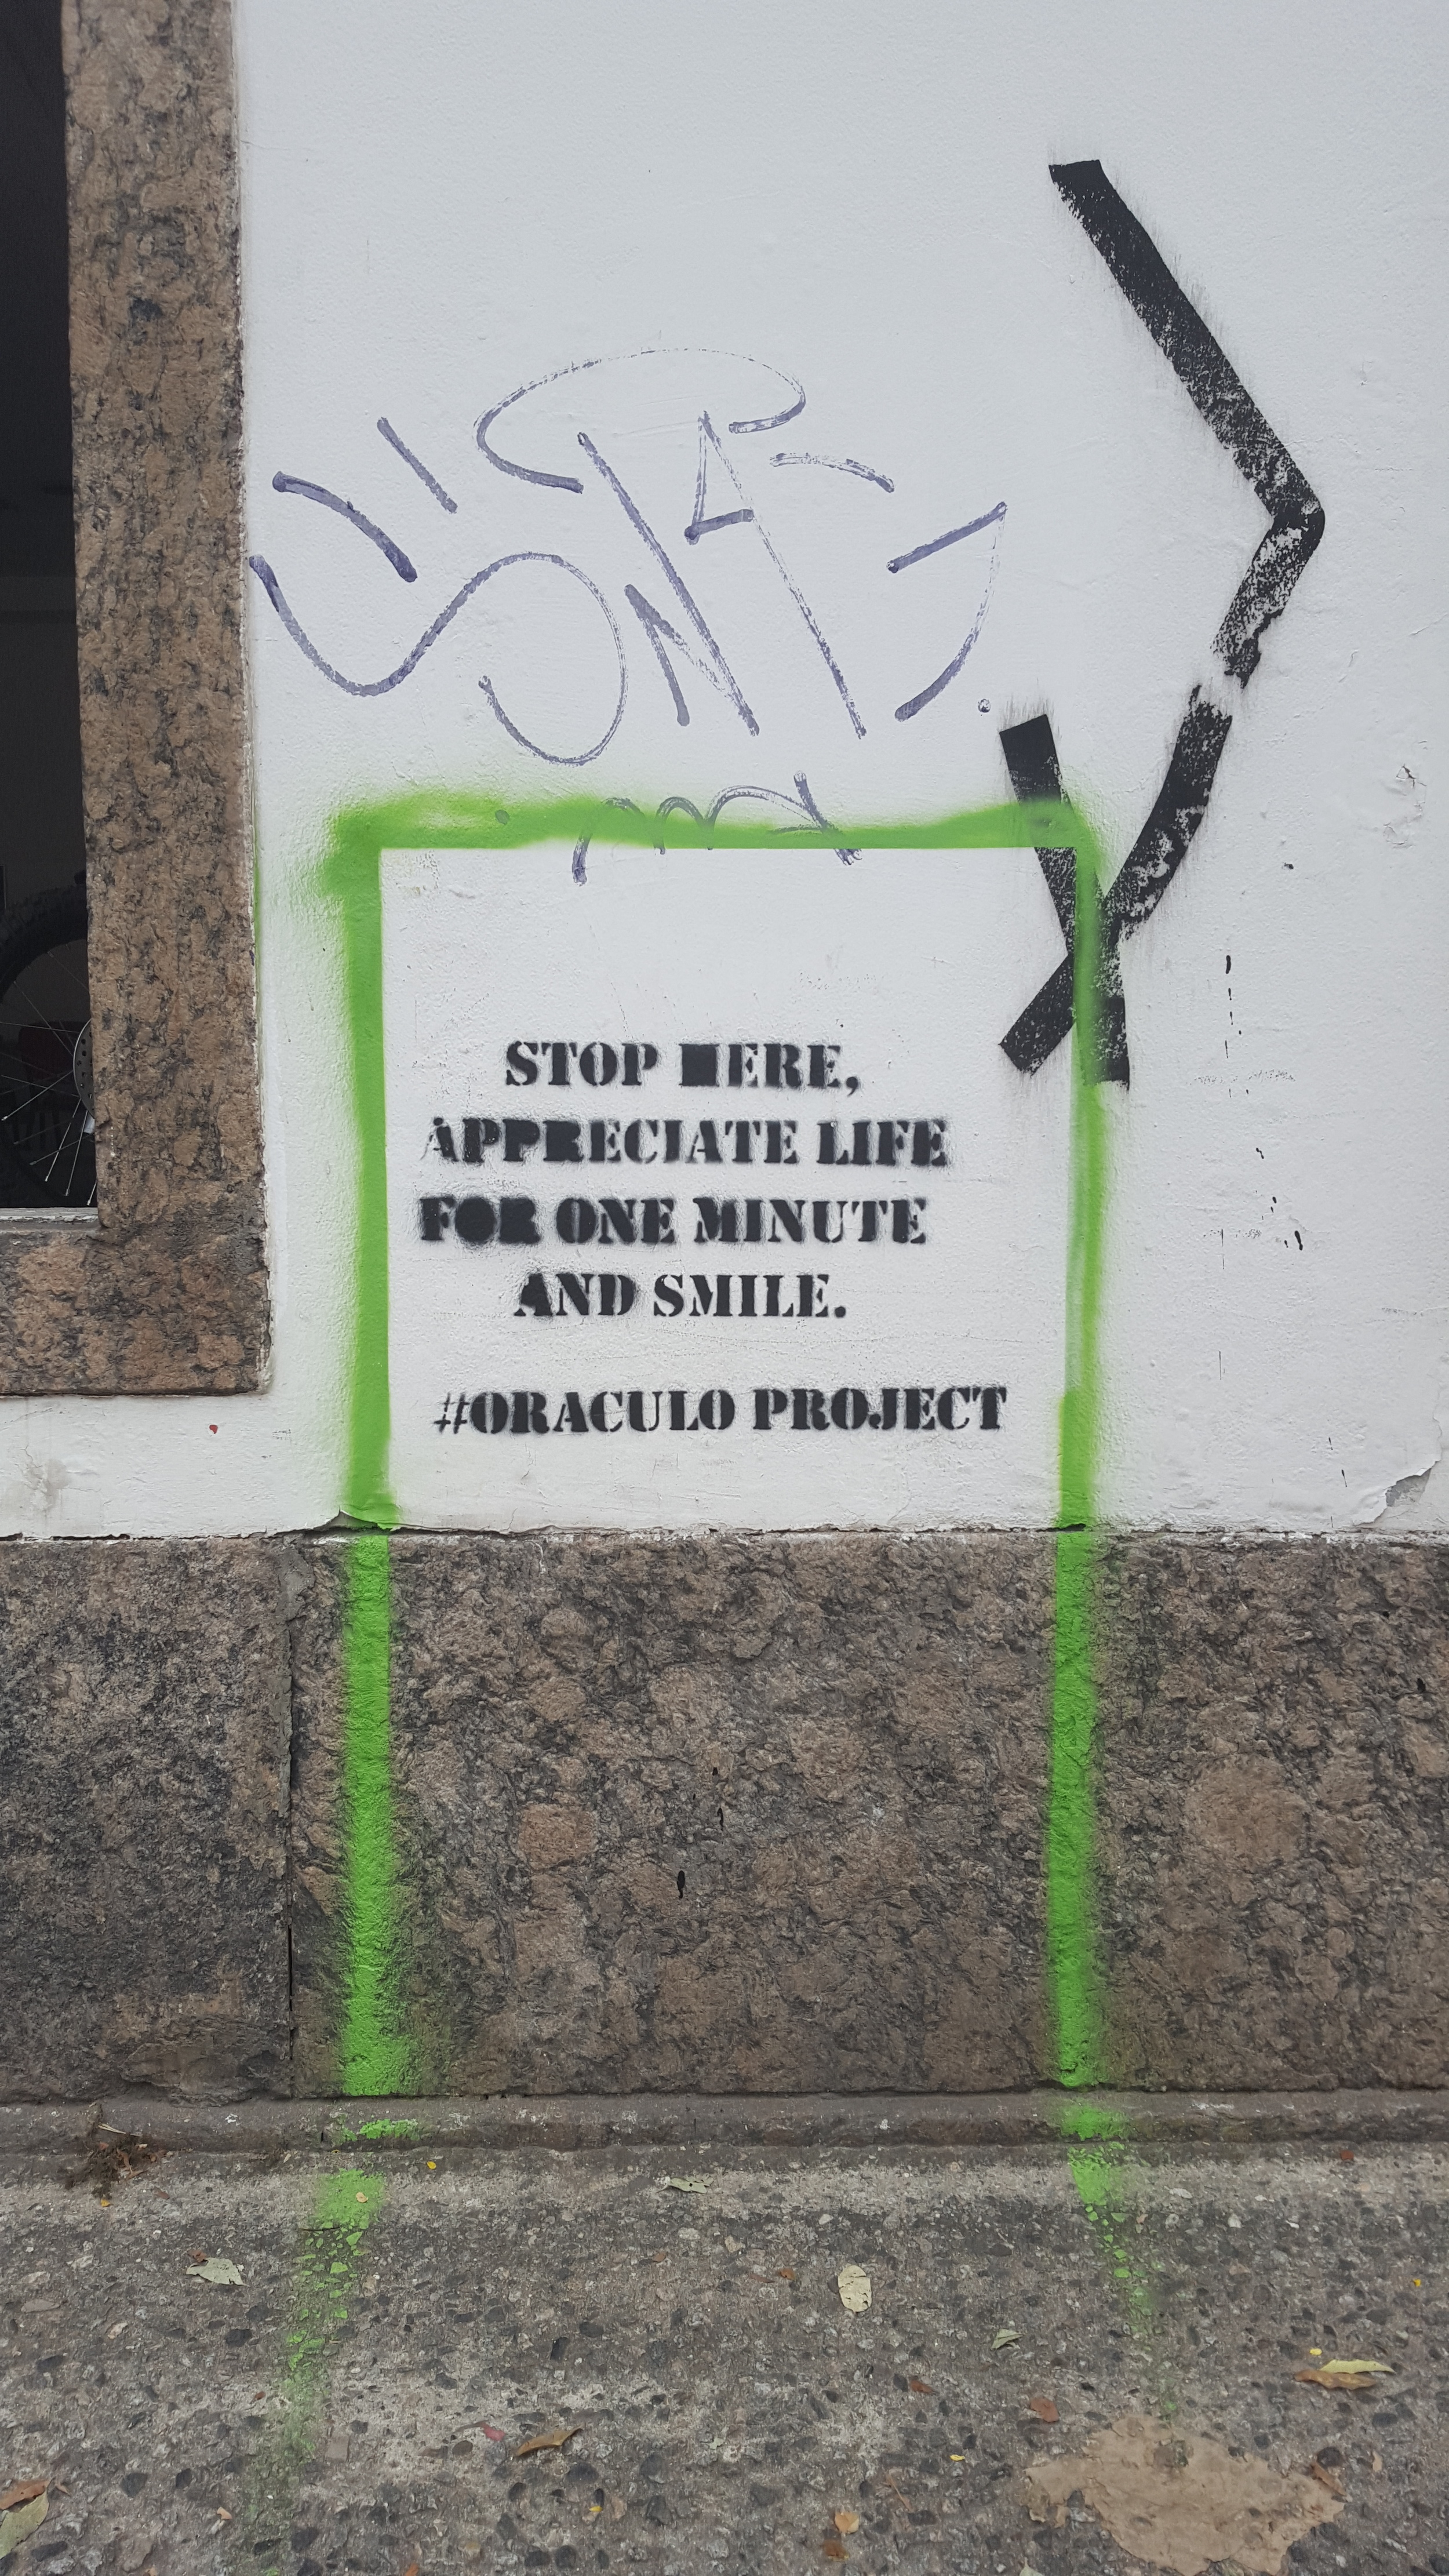 A friendly reminder found in the streets of Rio de Janeiro